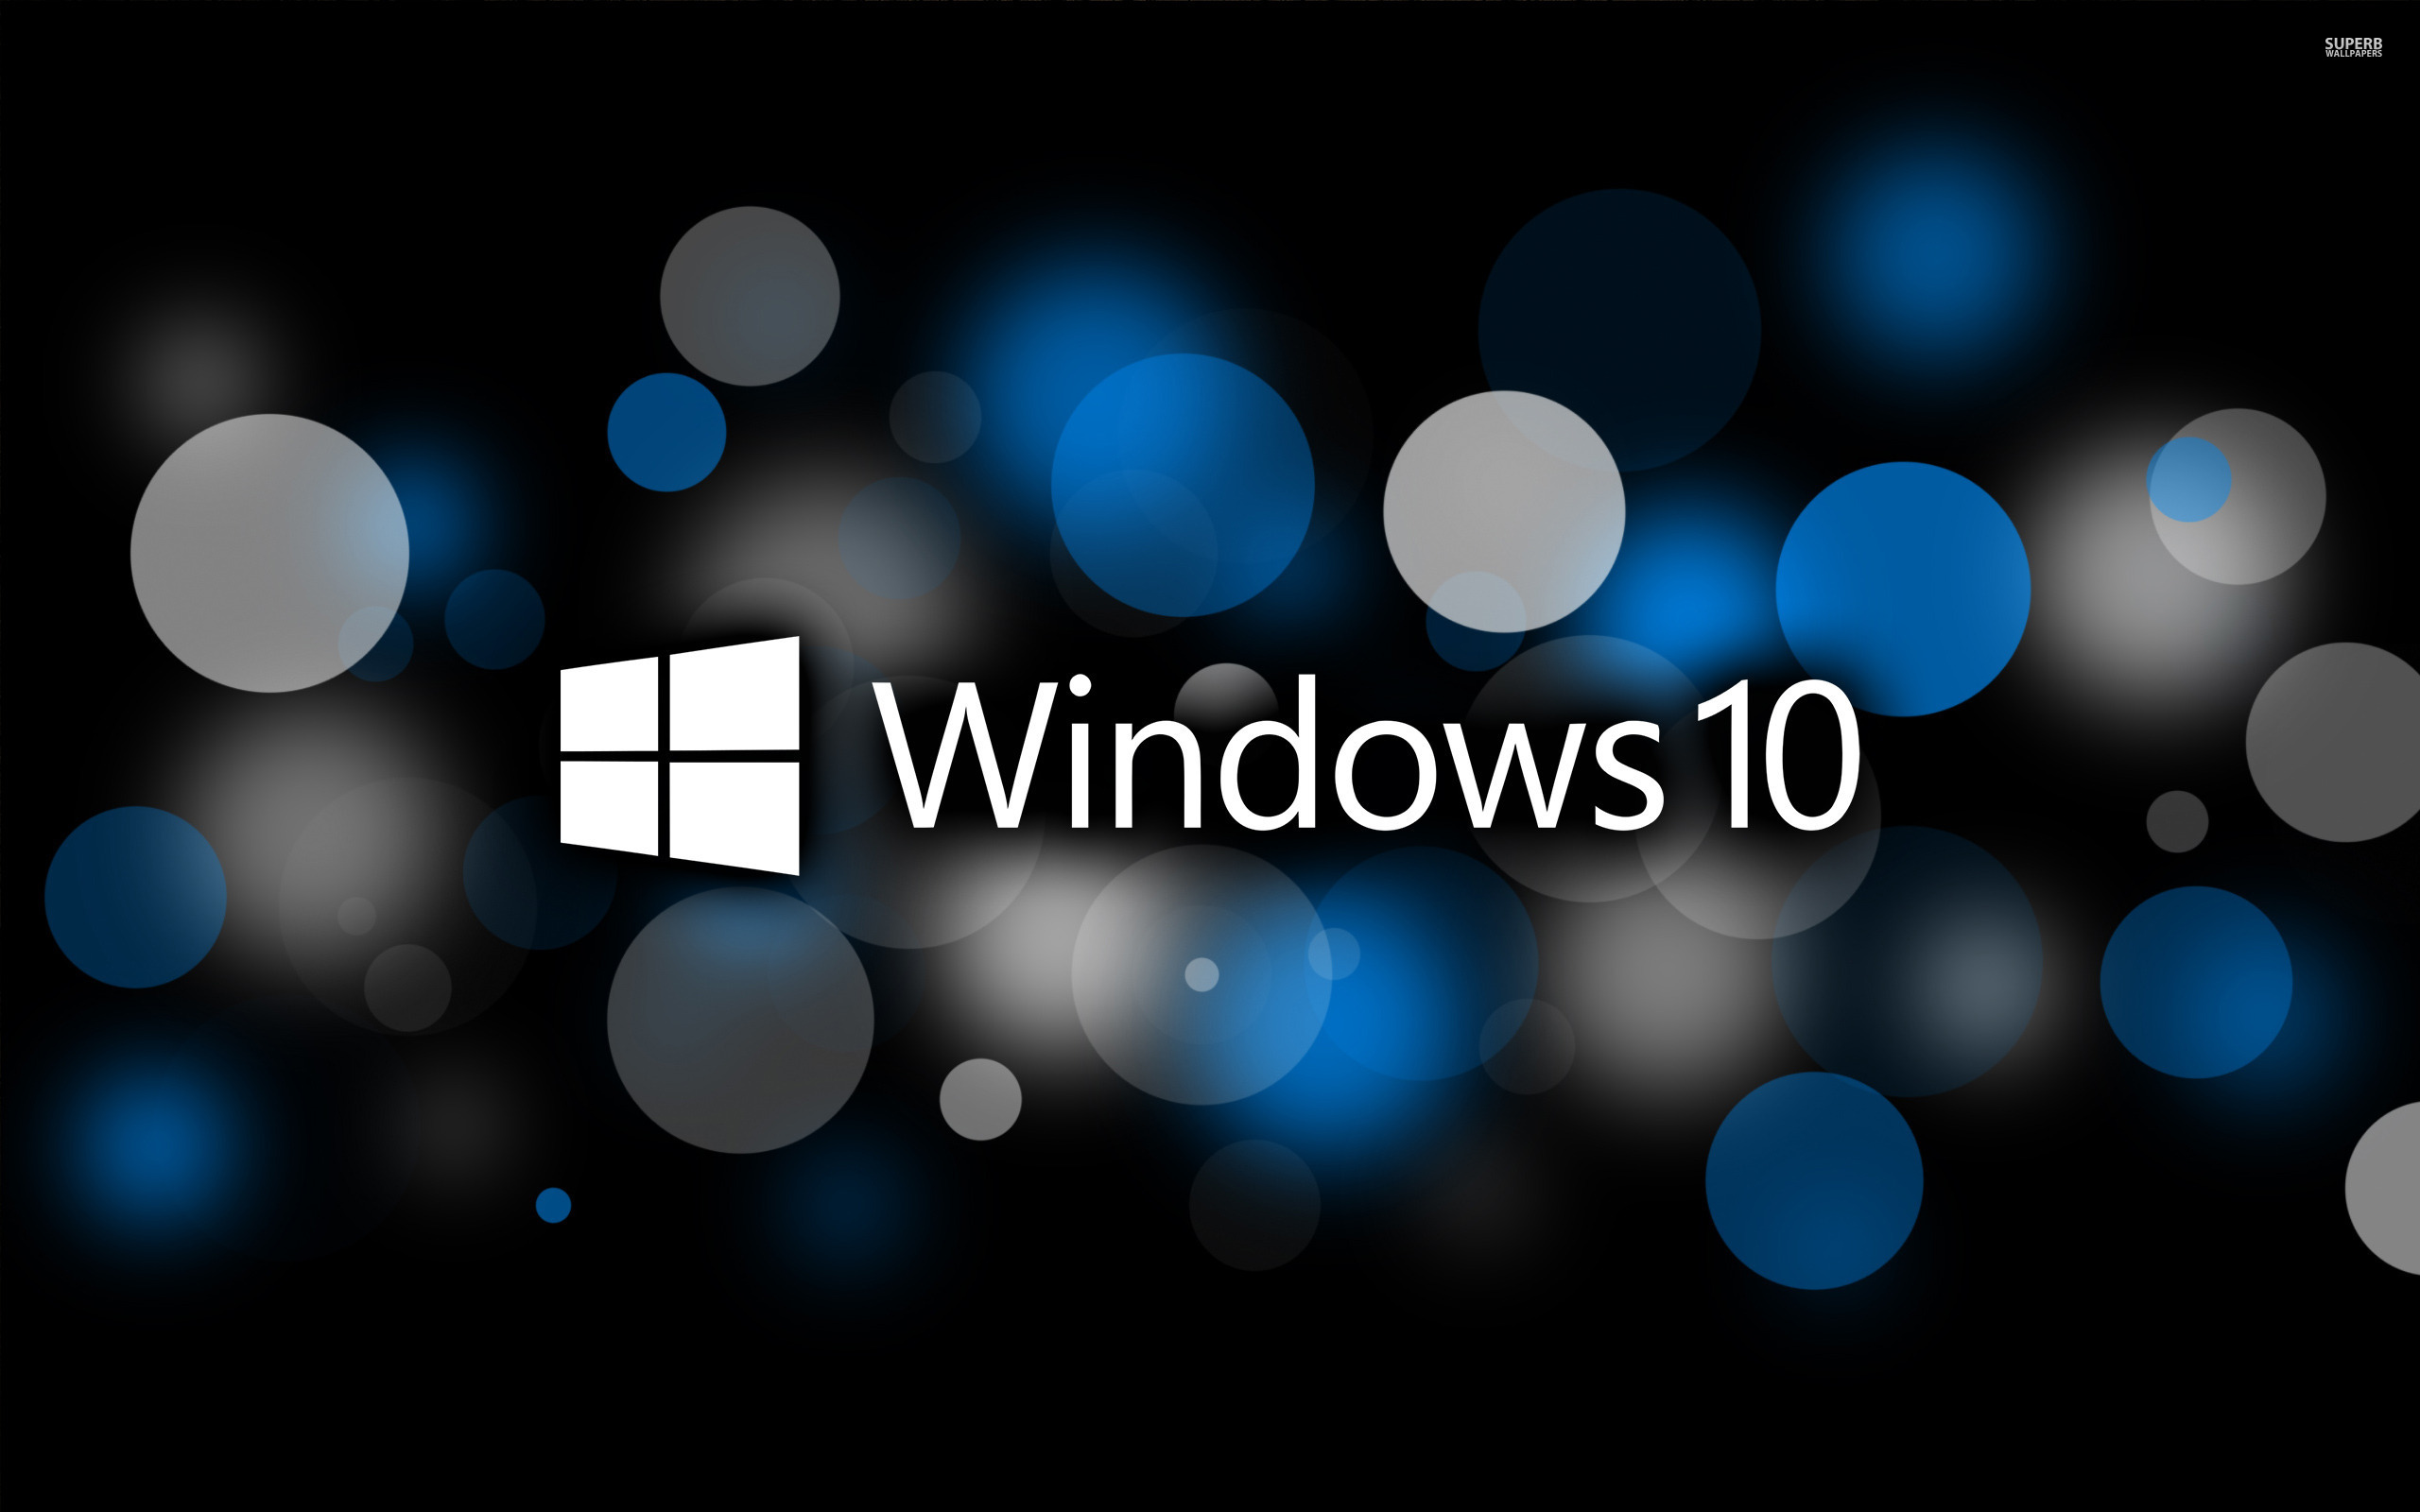 Windows 10 Wallpaper Download 355Y HDW   HD Wallpaperd 2560x1600